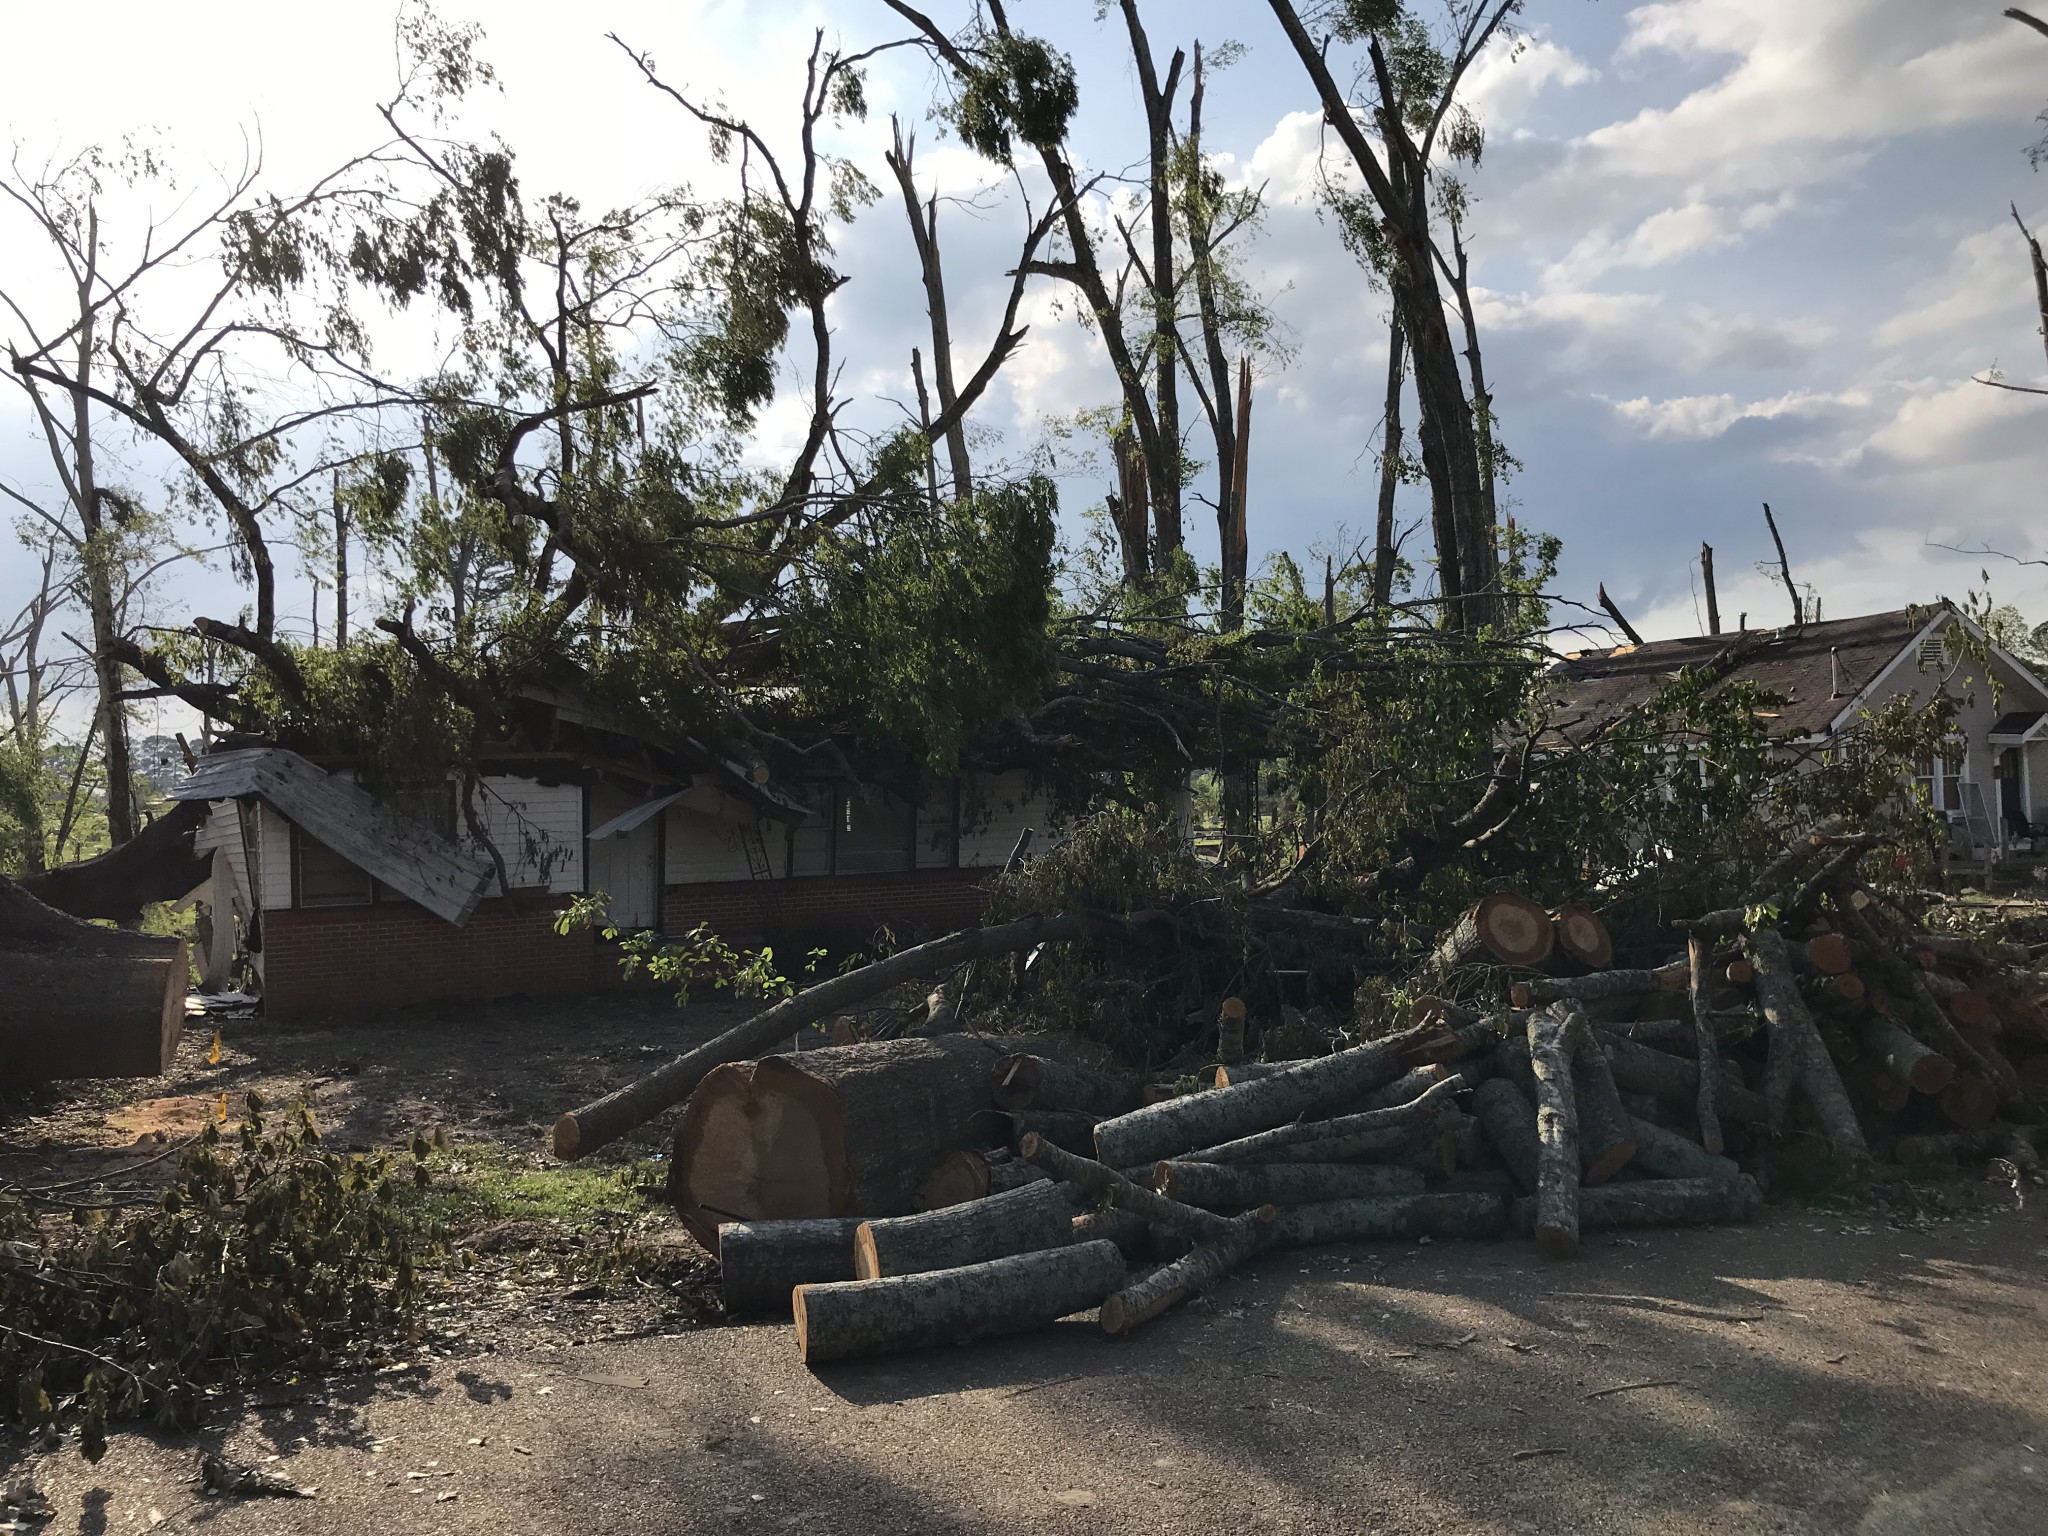 The Evans Street home of Kendra Butler, where she and her son Remington lost thier lives the night of the tornado, is pictured here soon afterward with piles of tree debris stacked on top of it.